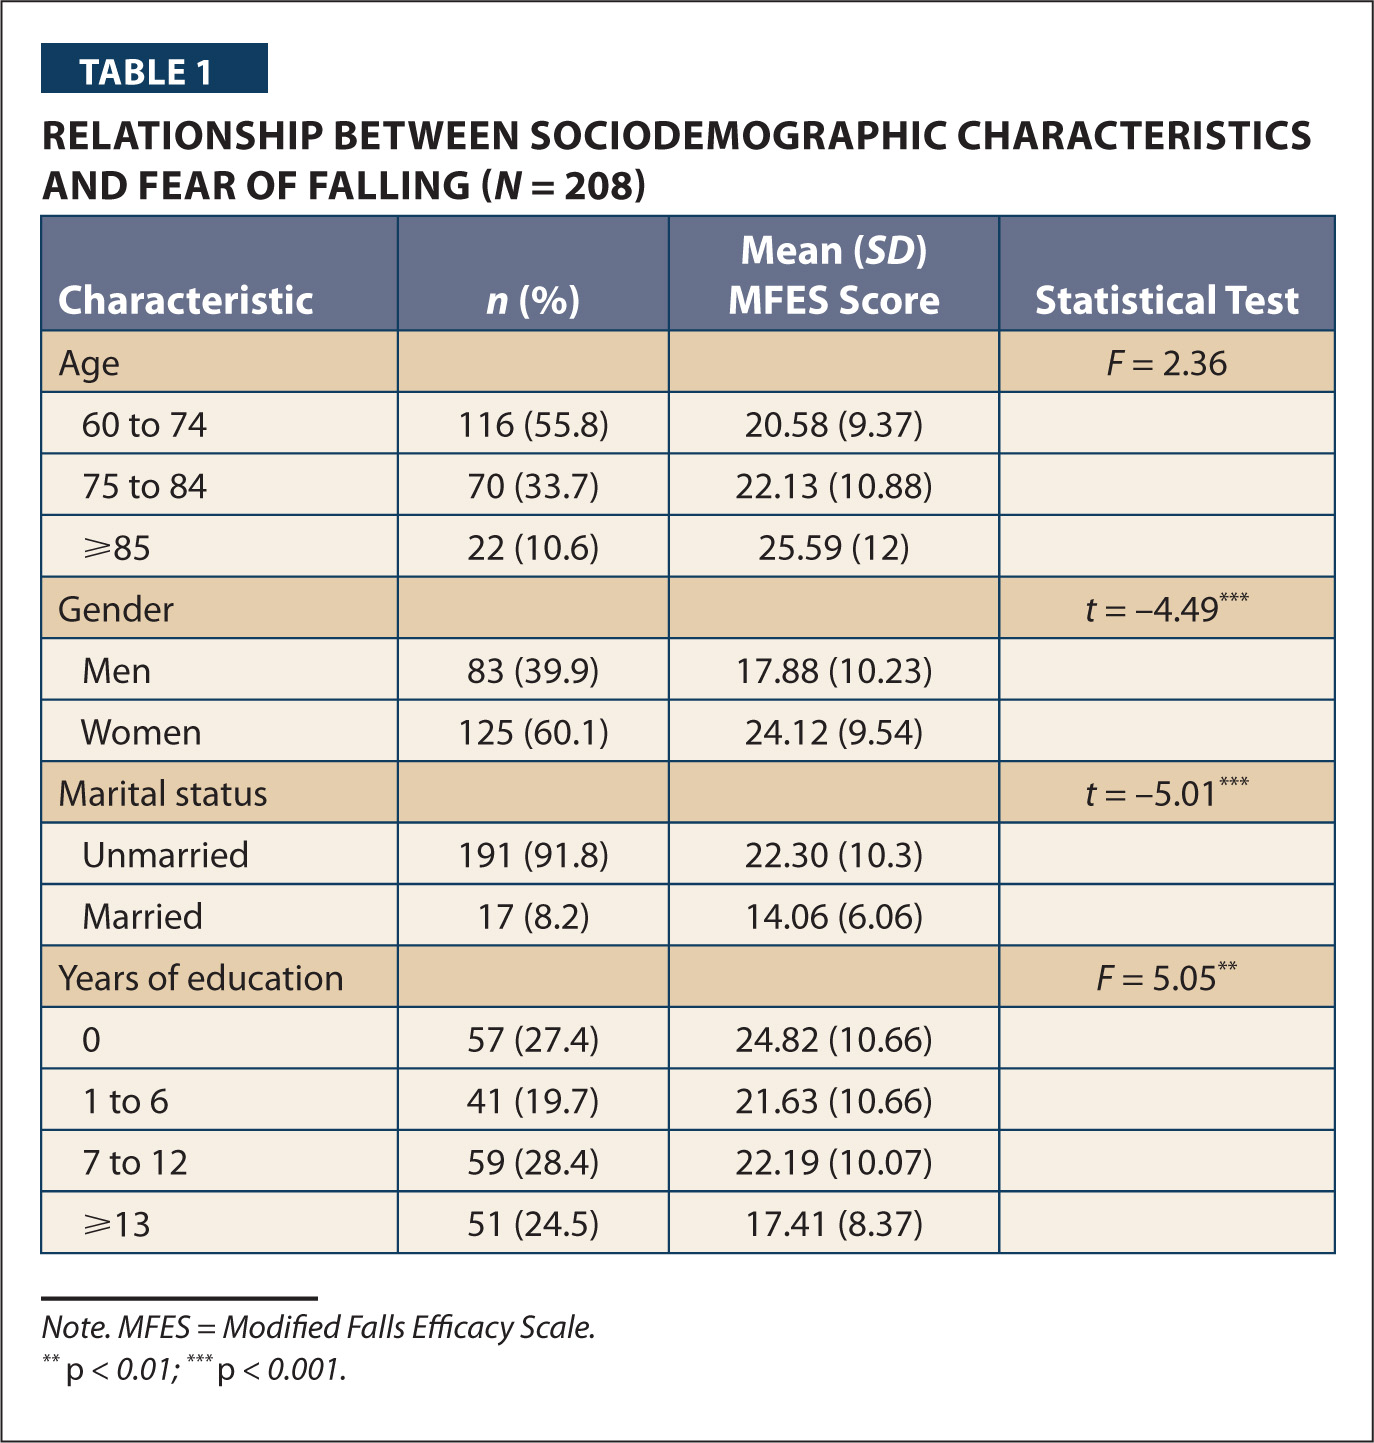 Relationship Between Sociodemographic Characteristics and Fear of Falling (N = 208)